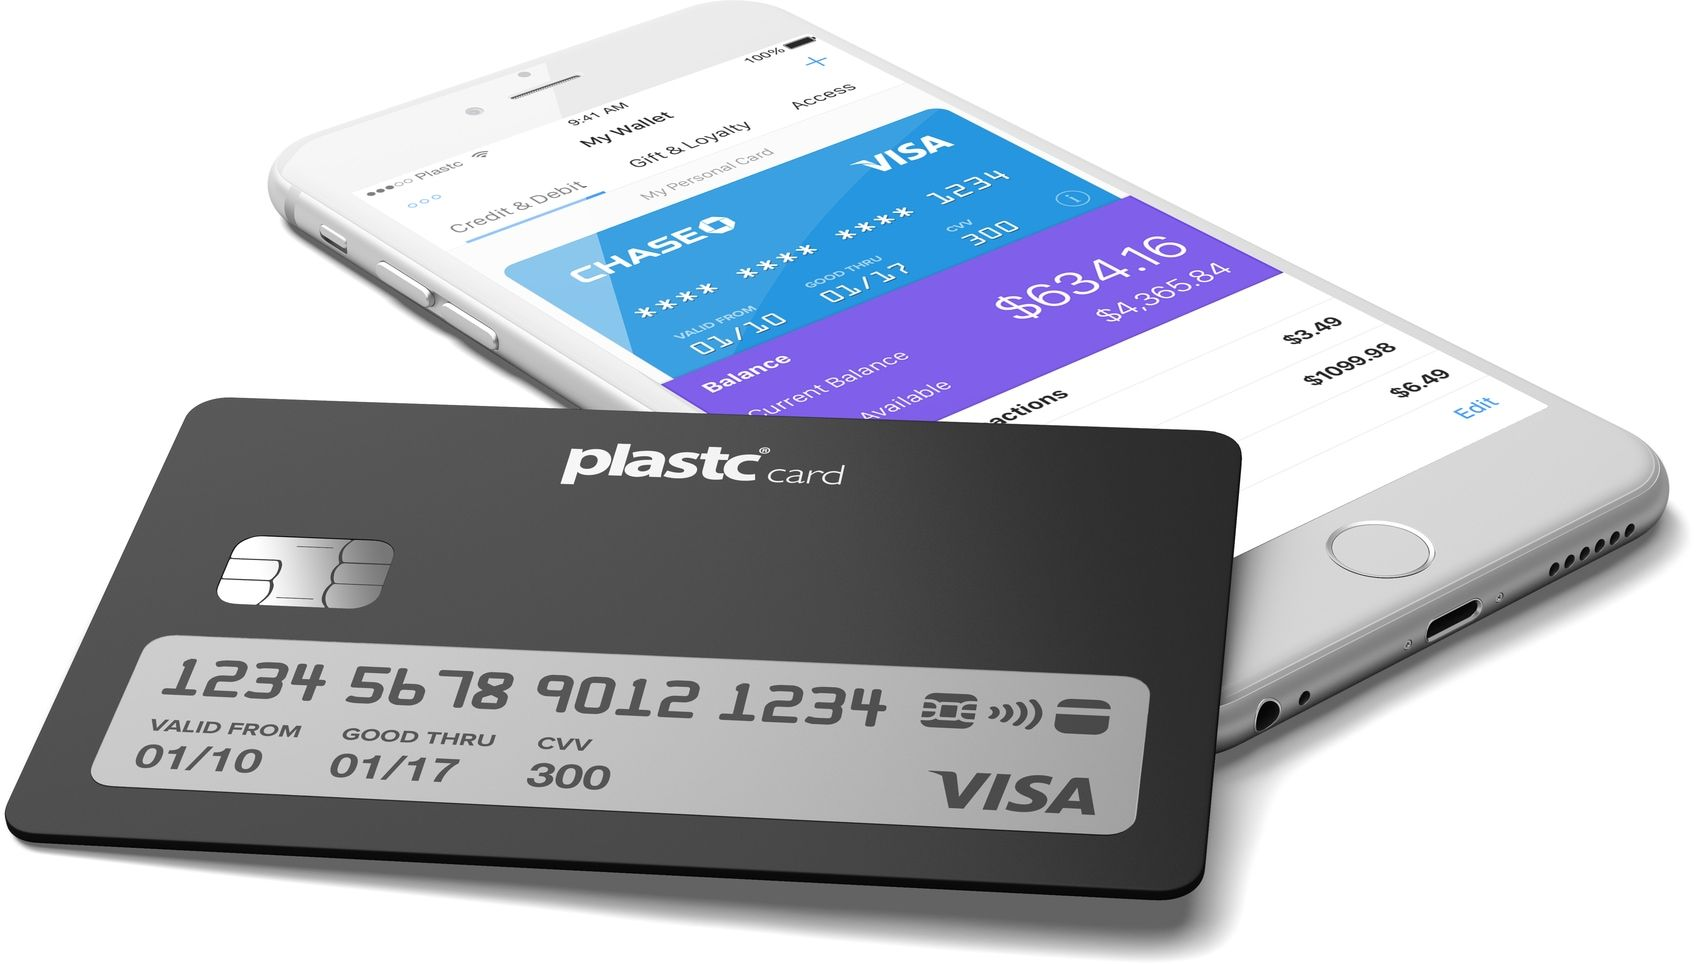 All cards on one card - Plastc Card Brings All Your Payment Cards Into One Sophisticated Device